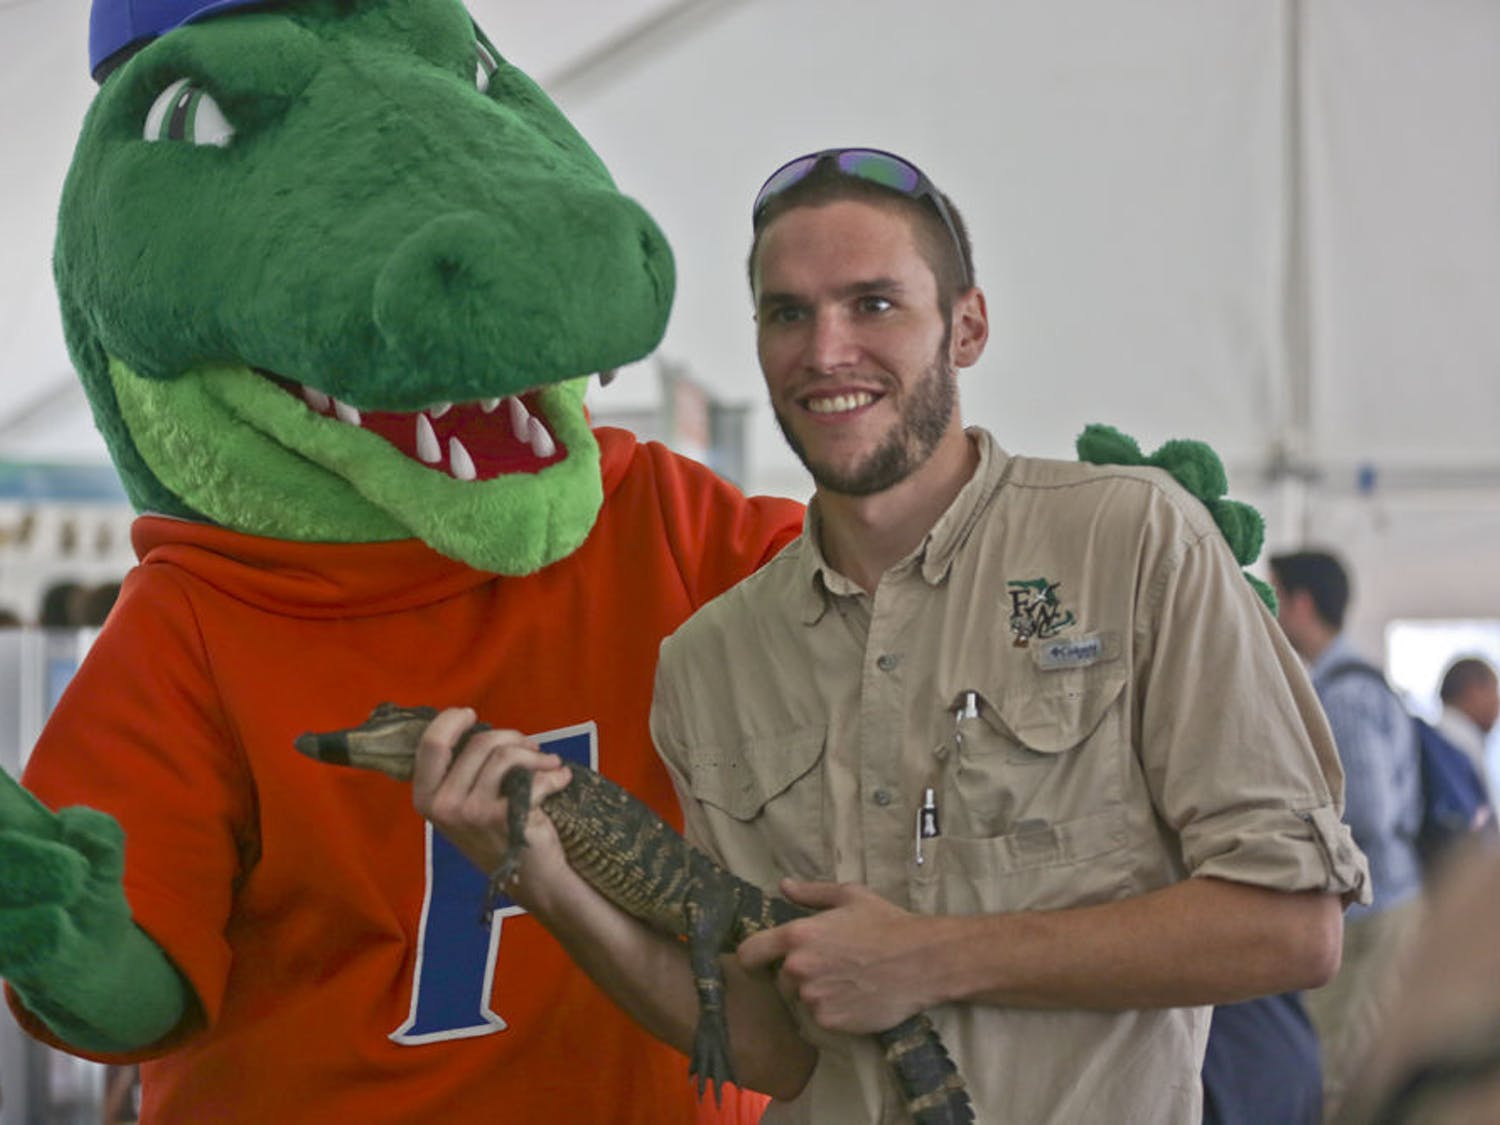 Rob Cuskley, a 28-year-old biological scientist, introduces a baby american alligator to Albert during the campus showcase for Inauguration Week on Dec. 2, 2015. The Florida Museum of Natural History encouraged Cuskley to bring the alligator to educate students.